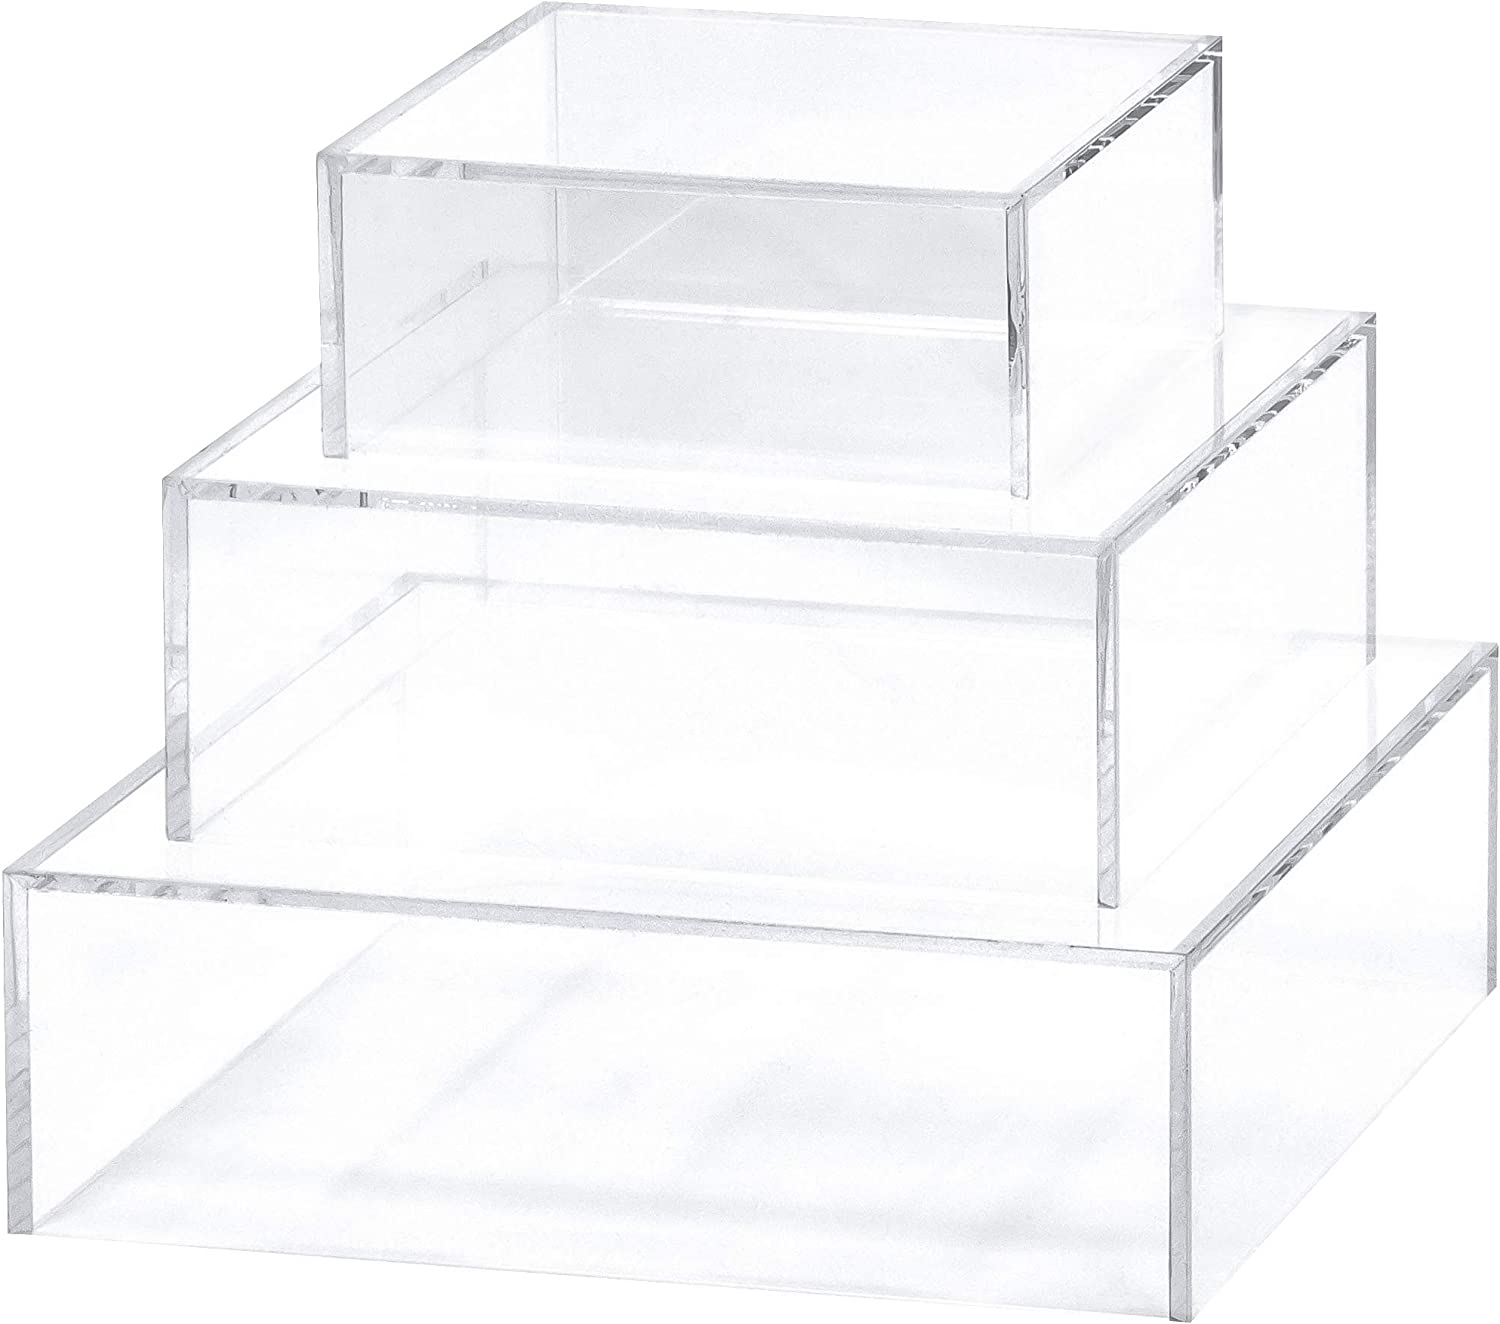 Red Co 3-Pack Crystal Clear Small Acrylic Cubic Display Riser Stands with Hollow Bottoms Transparent